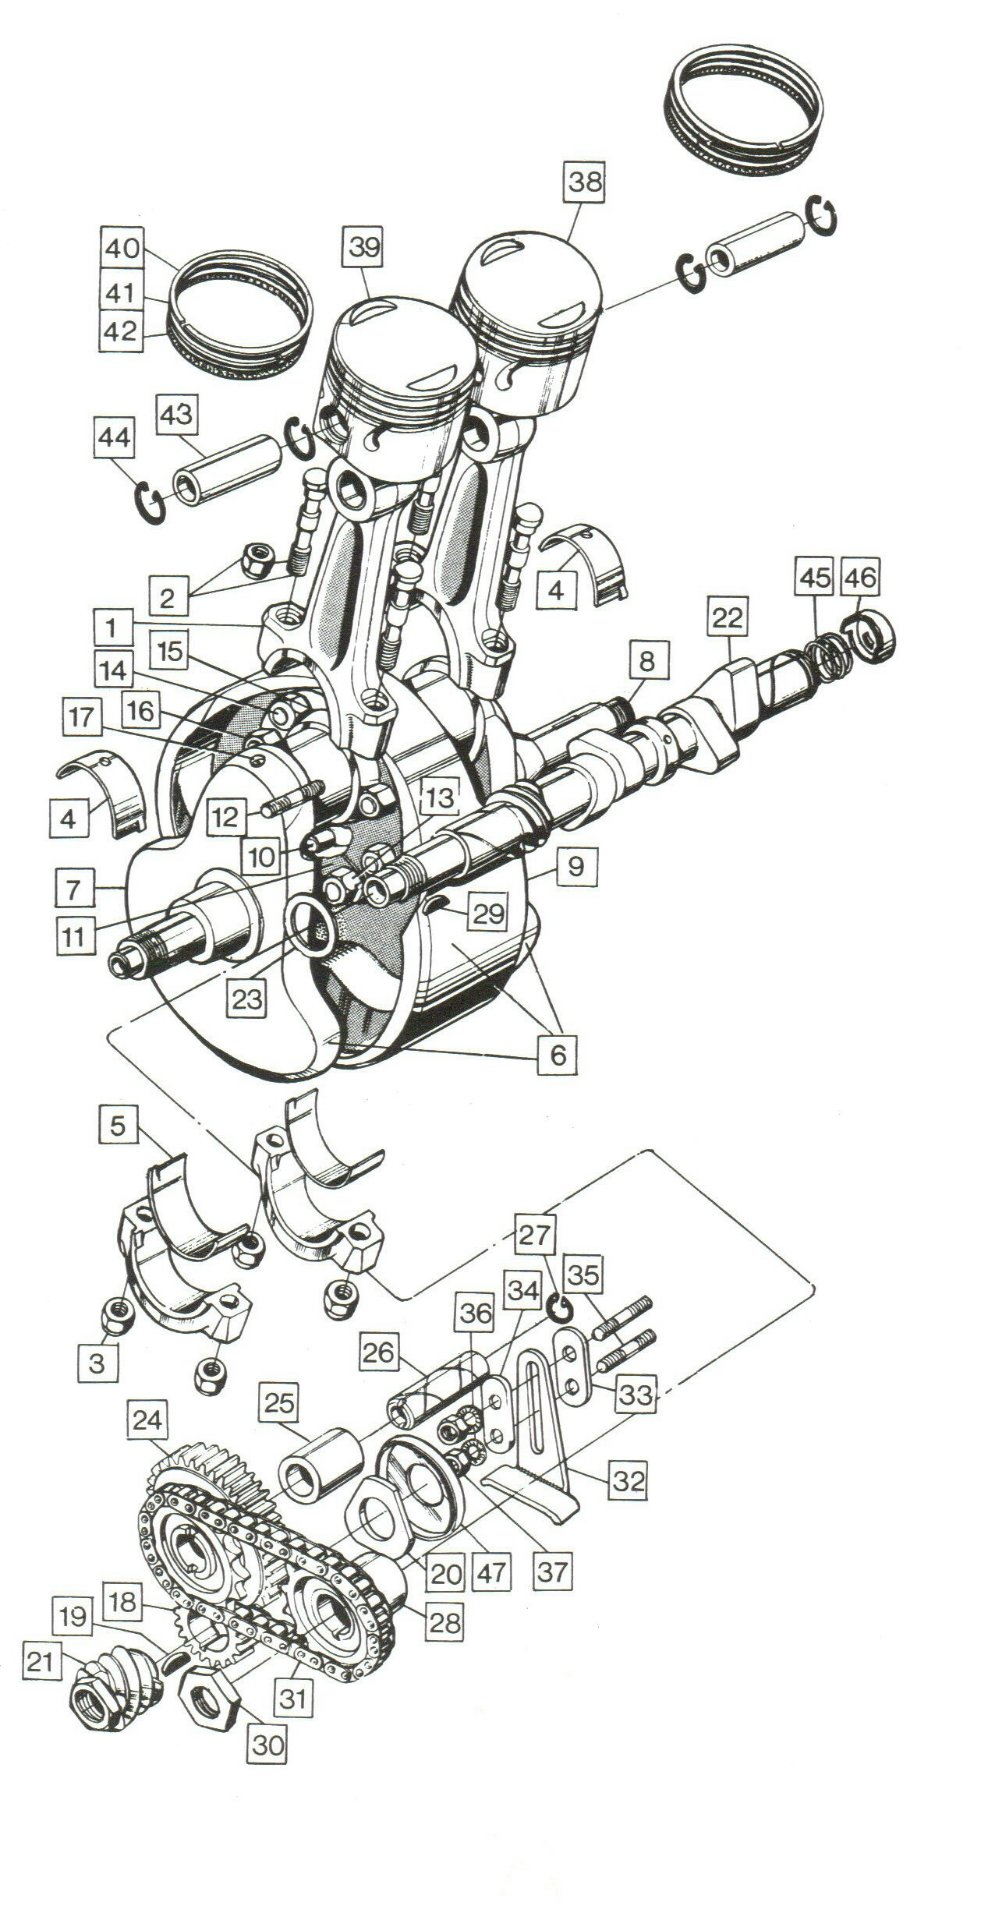 1971_g1 on Harley Davidson Engine Diagram